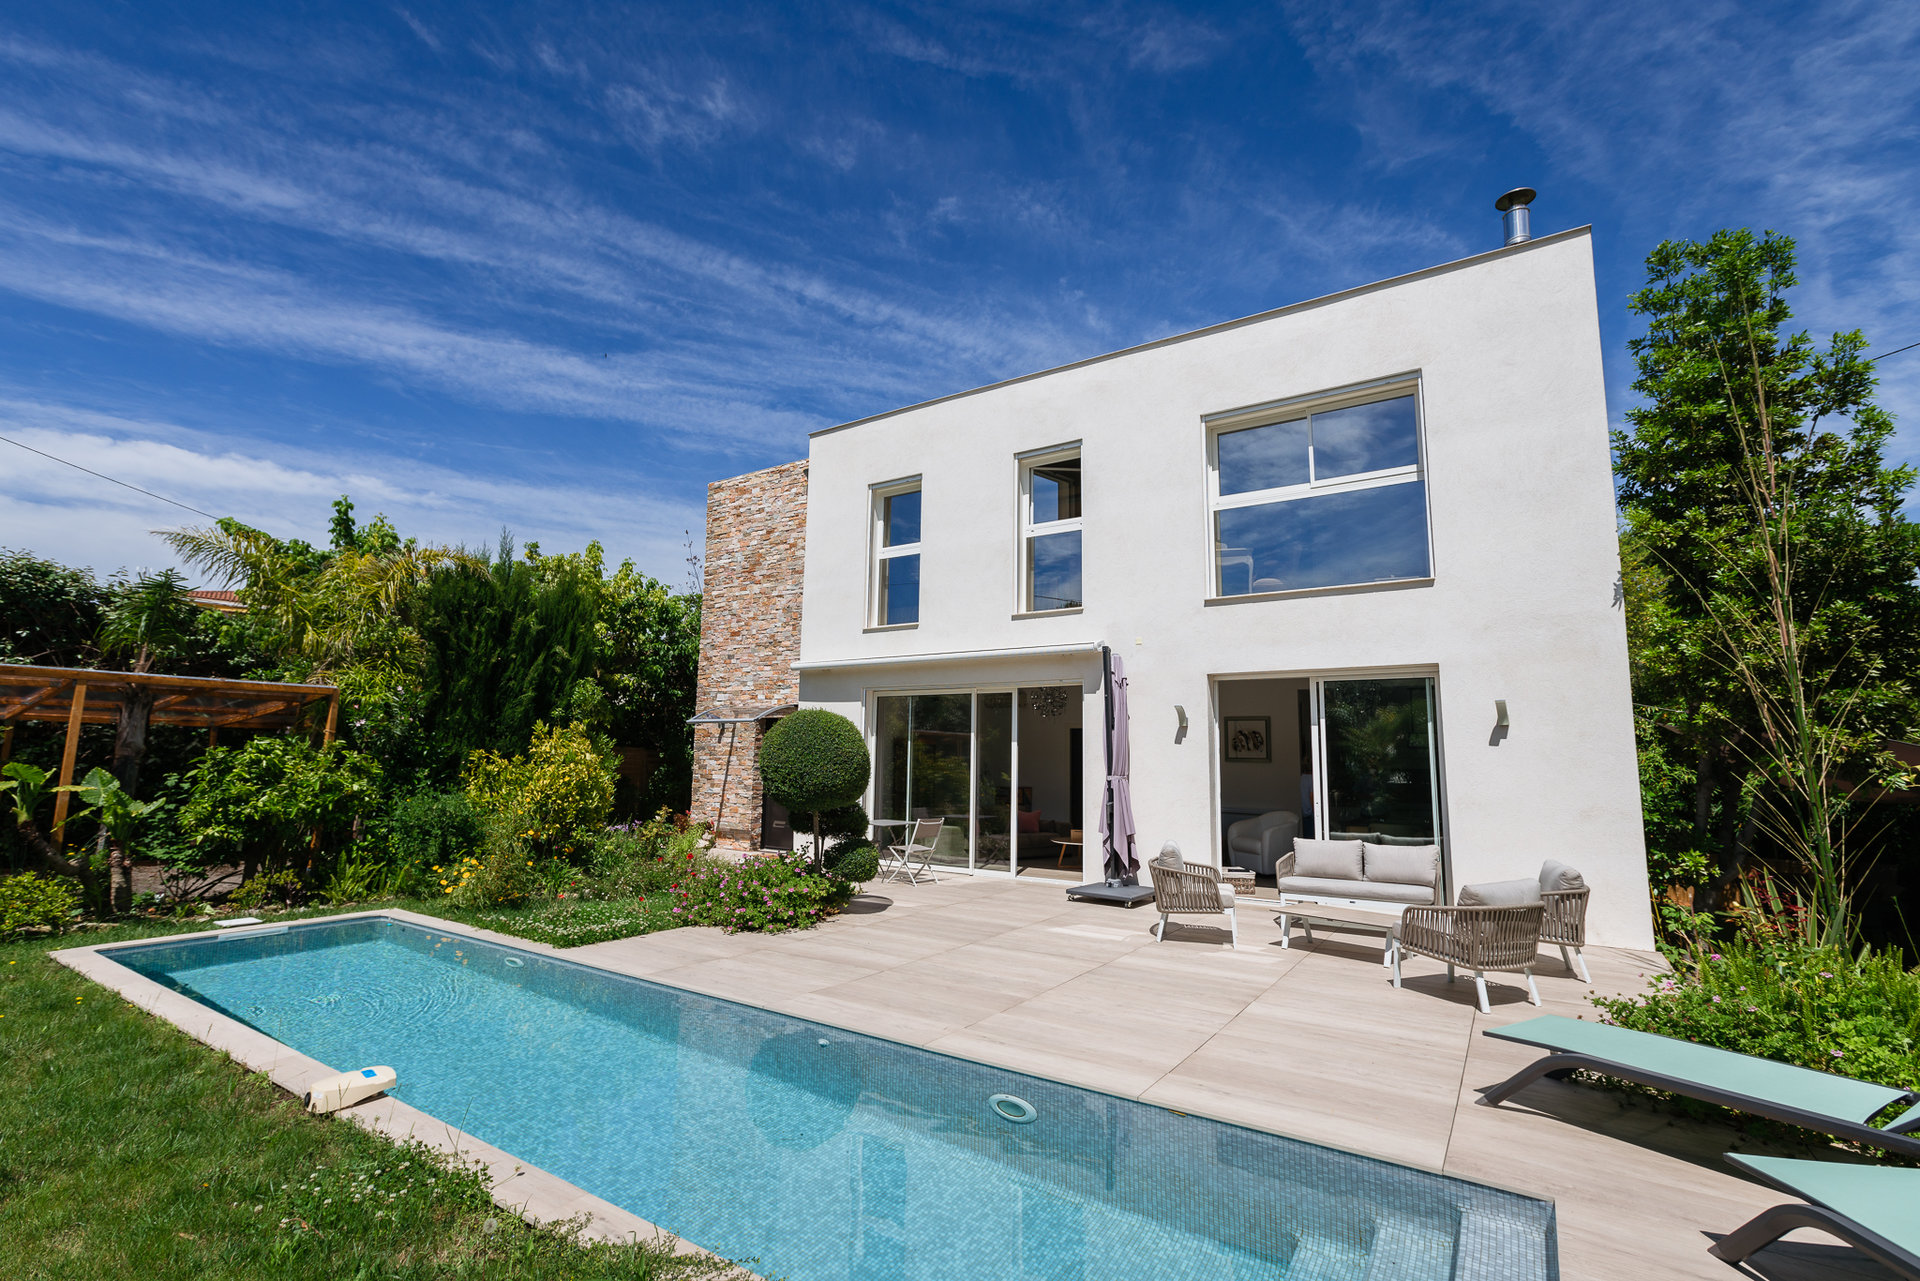 VILLA IN A QUIET AREA - WALKING DISTANCE TO THE BEACH